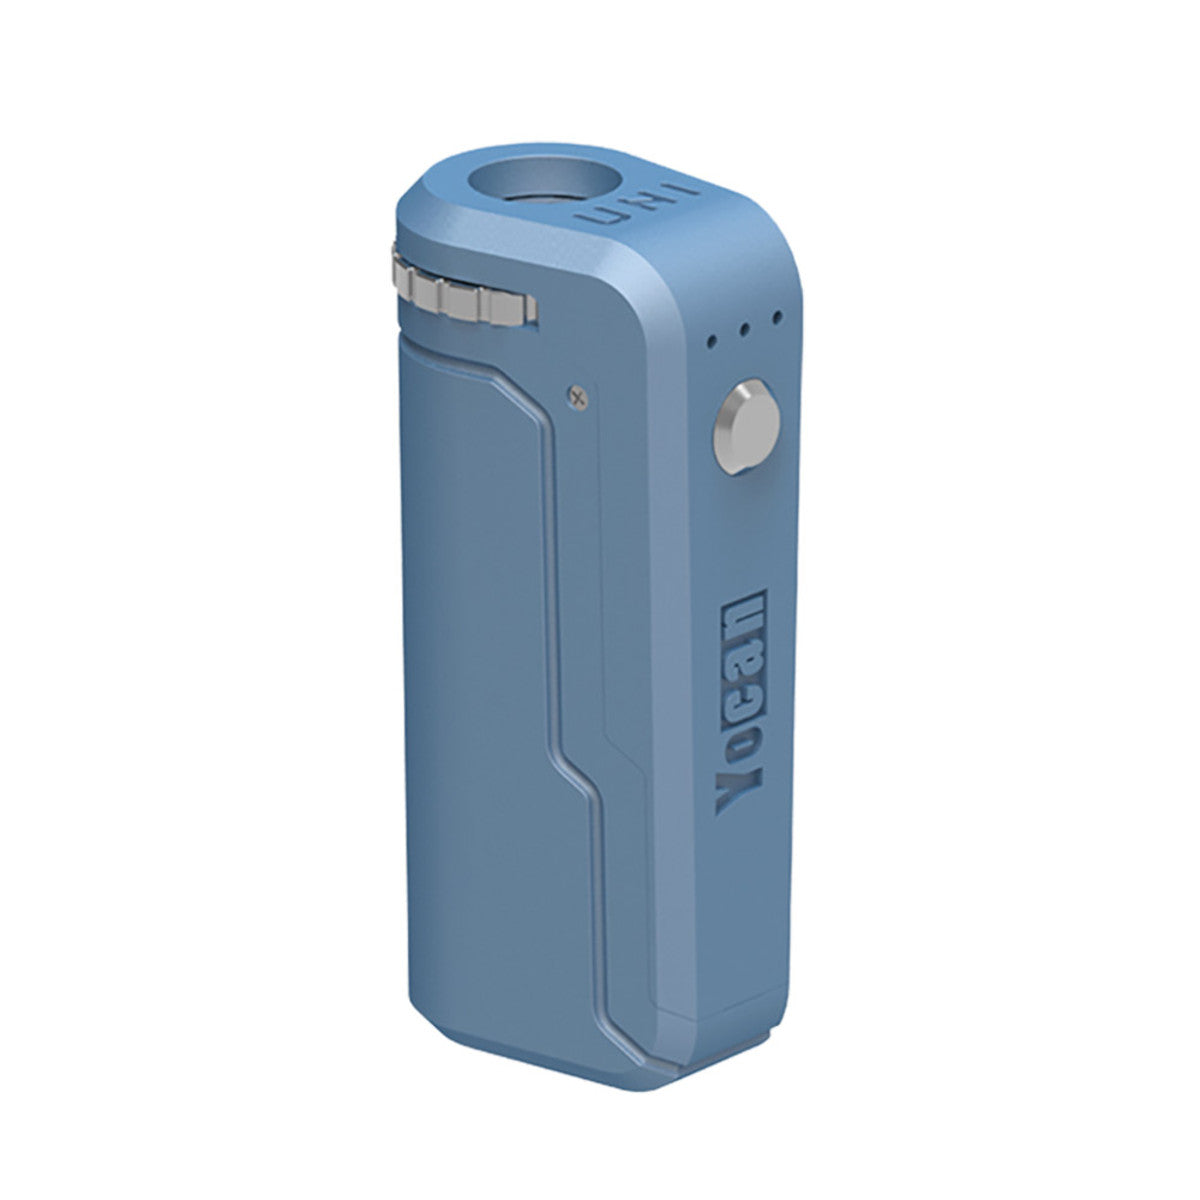 Yocan UNI Portable Box Mod- Airy Blue